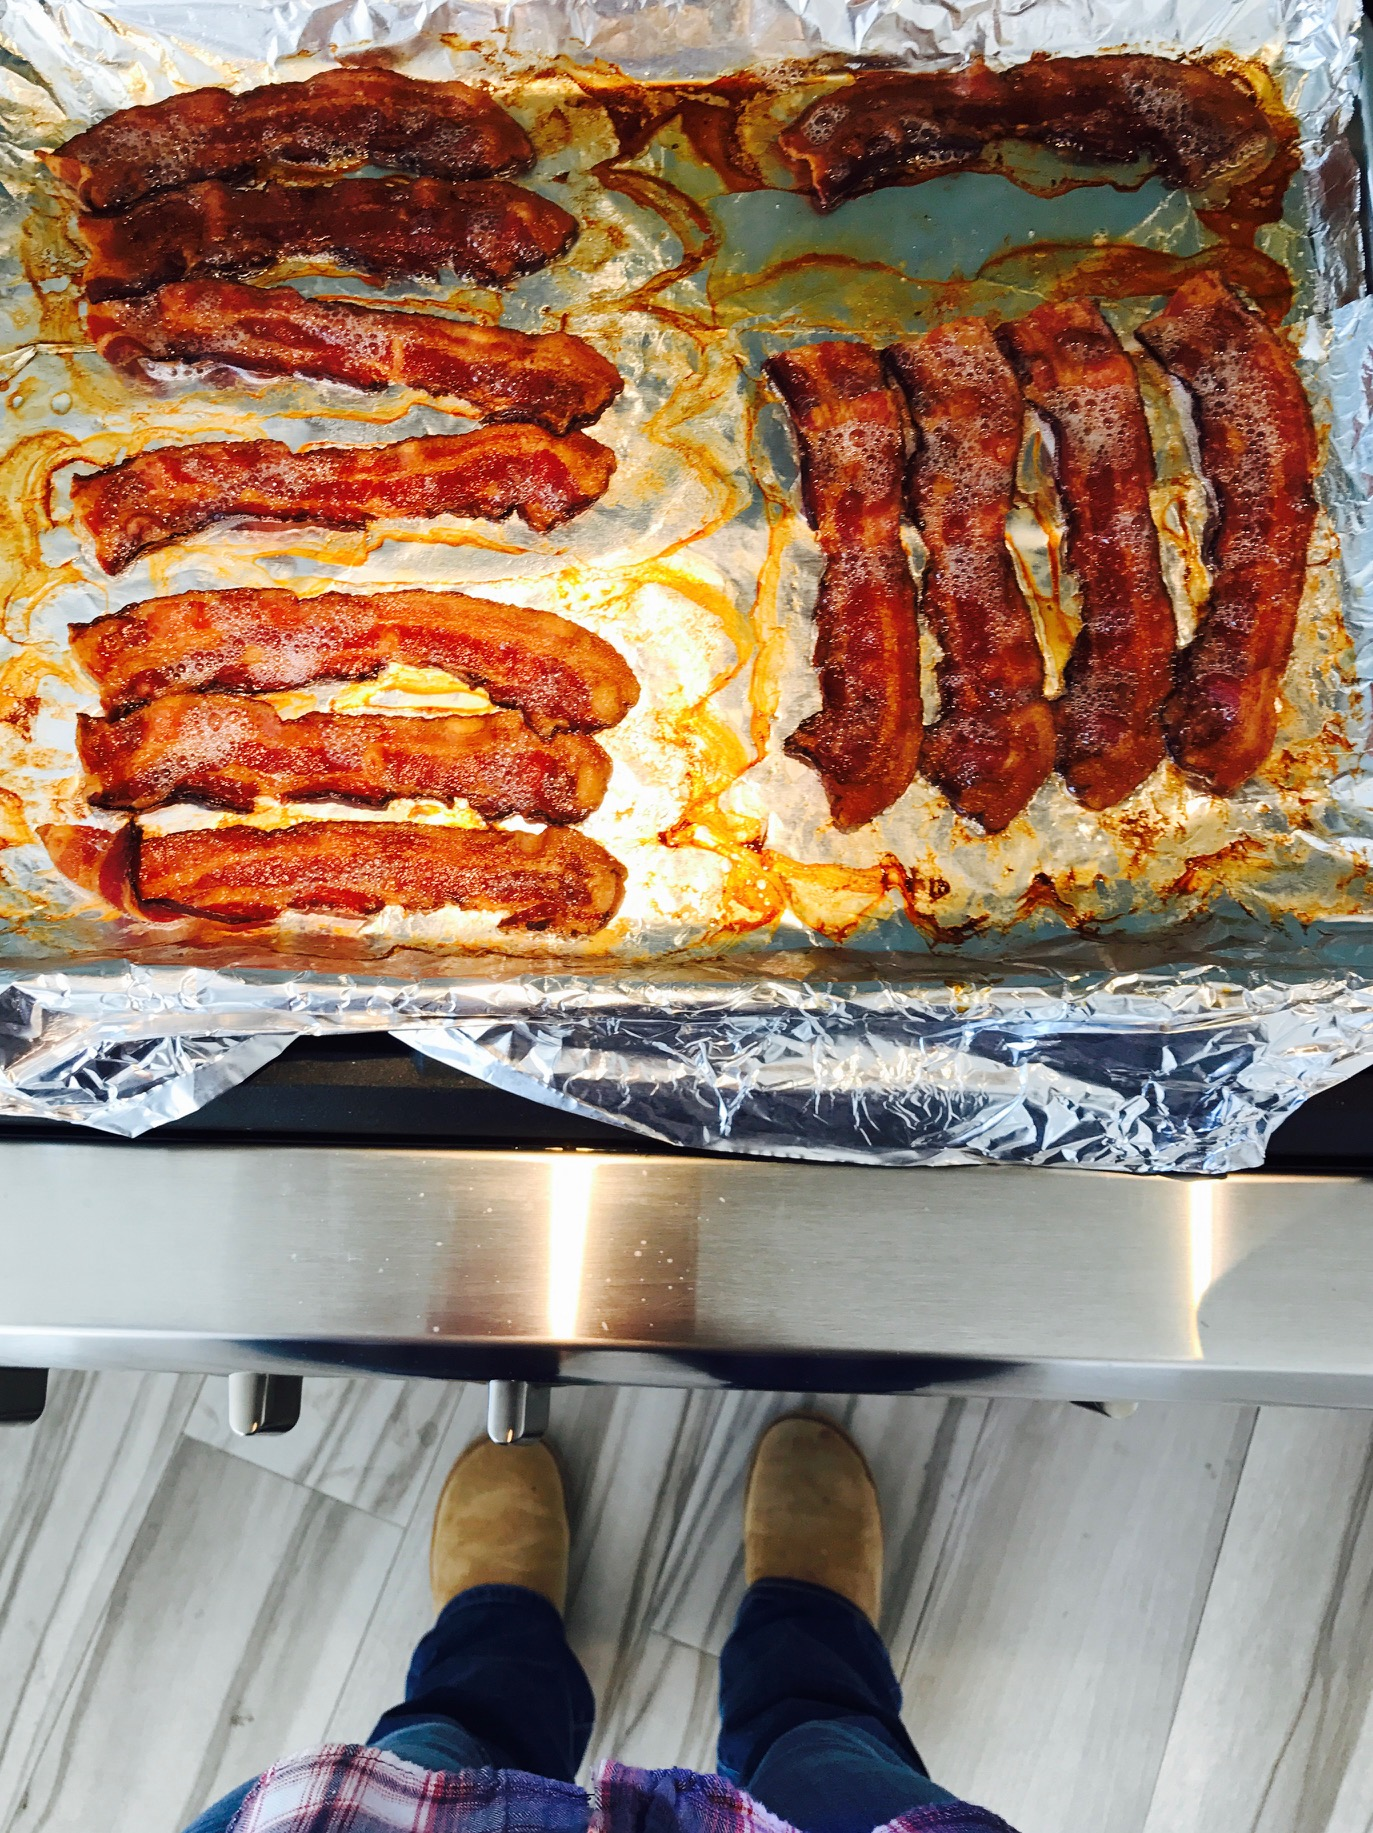 STOP FRYING your bacon already!!!  BAKE IT, BABY!